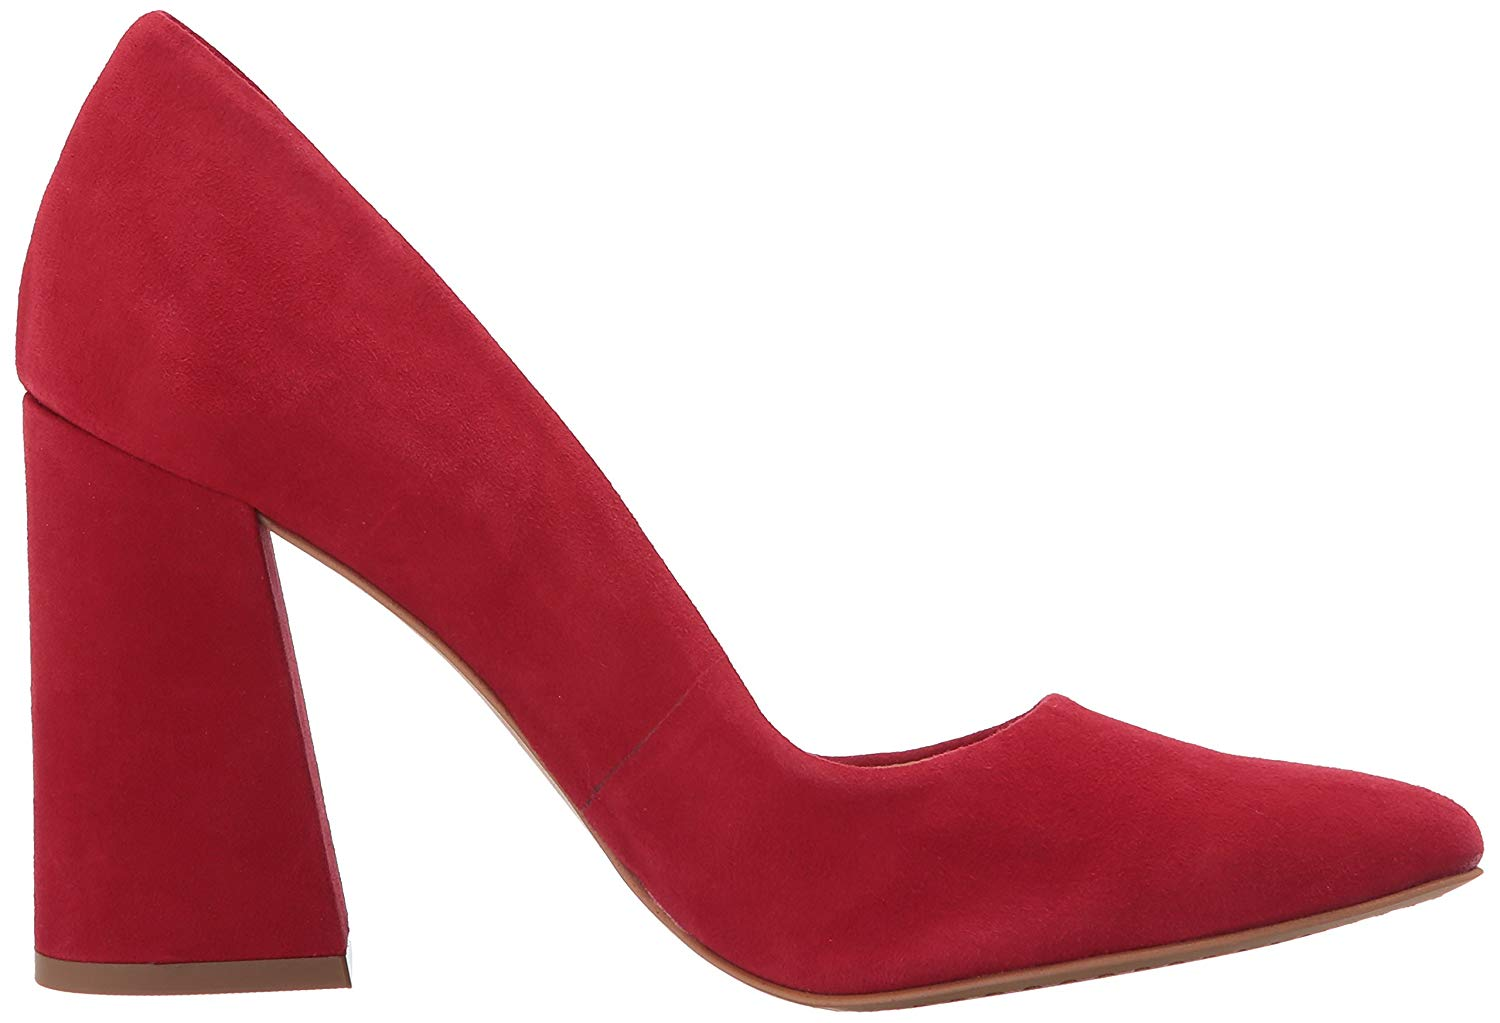 2d5d0055c6 Vince Camuto Women's Talise Suede Leather Block-Heel Pump Cherry Red ...